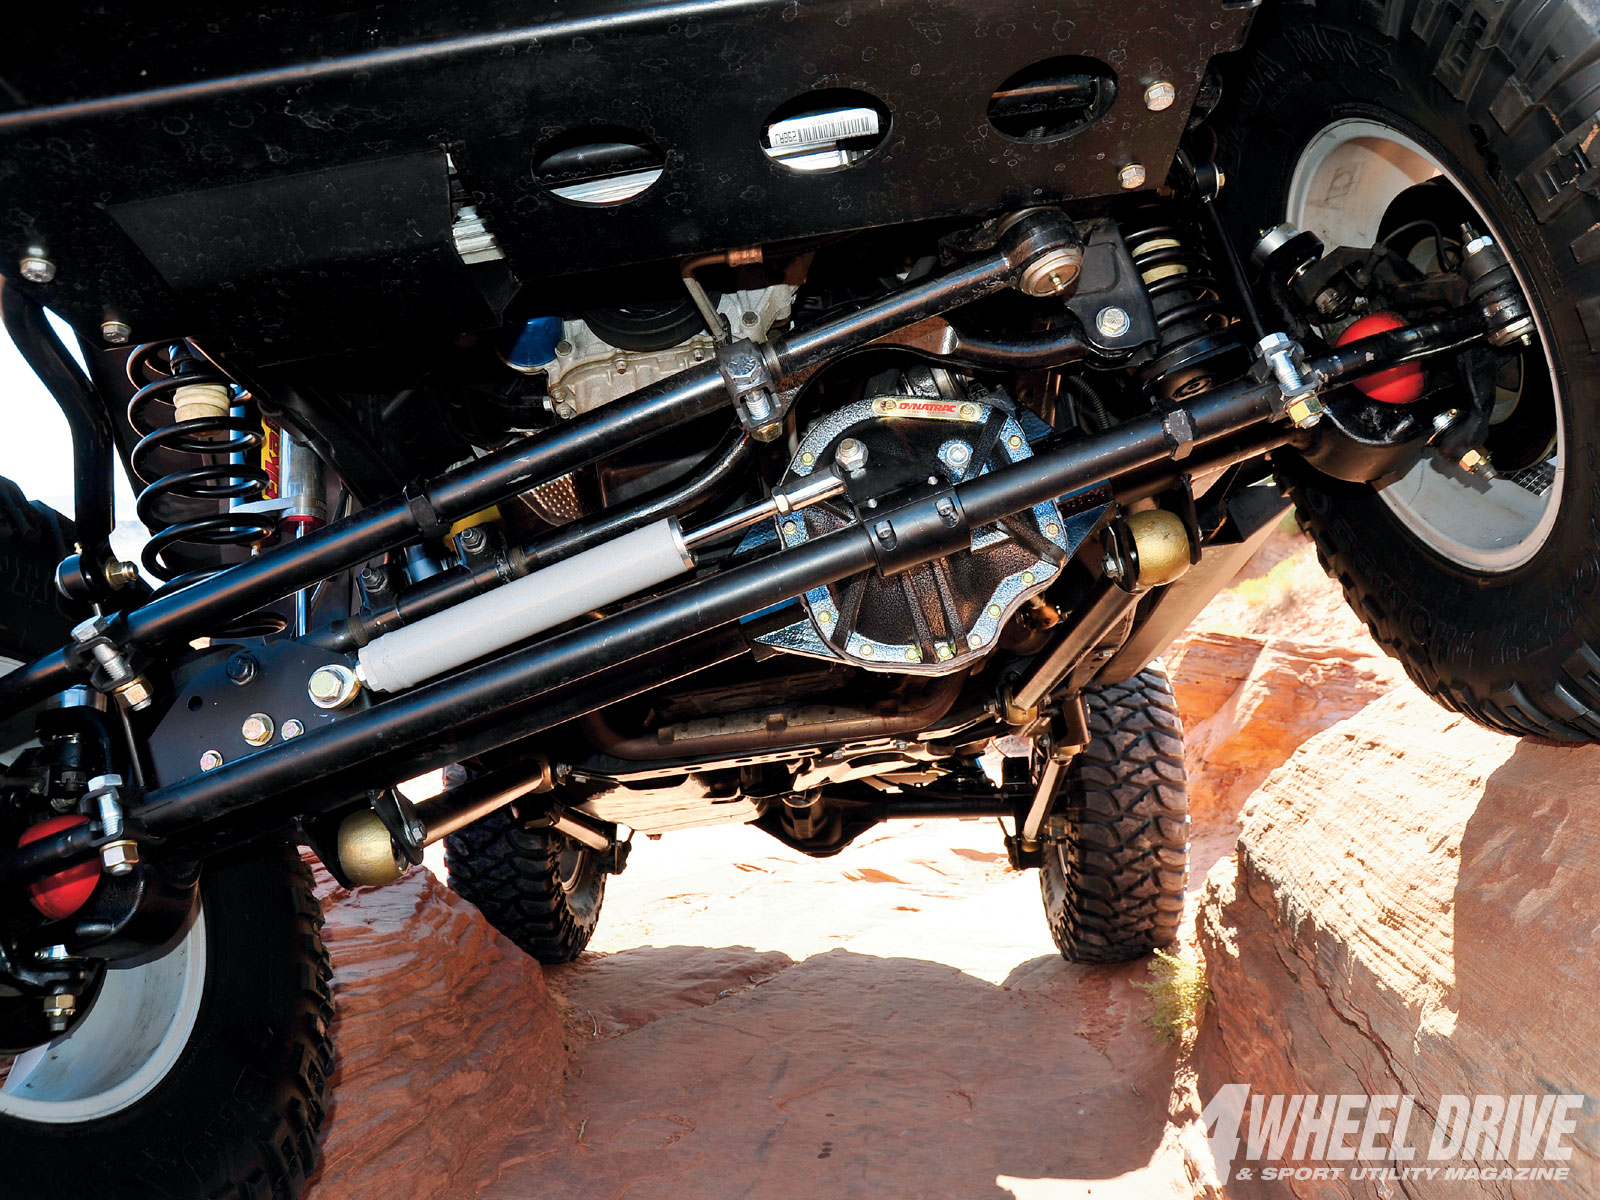 1101 4wd 05+2008 jeep wrangler JK rubicon+currie enterprises JK drag link and tie rod